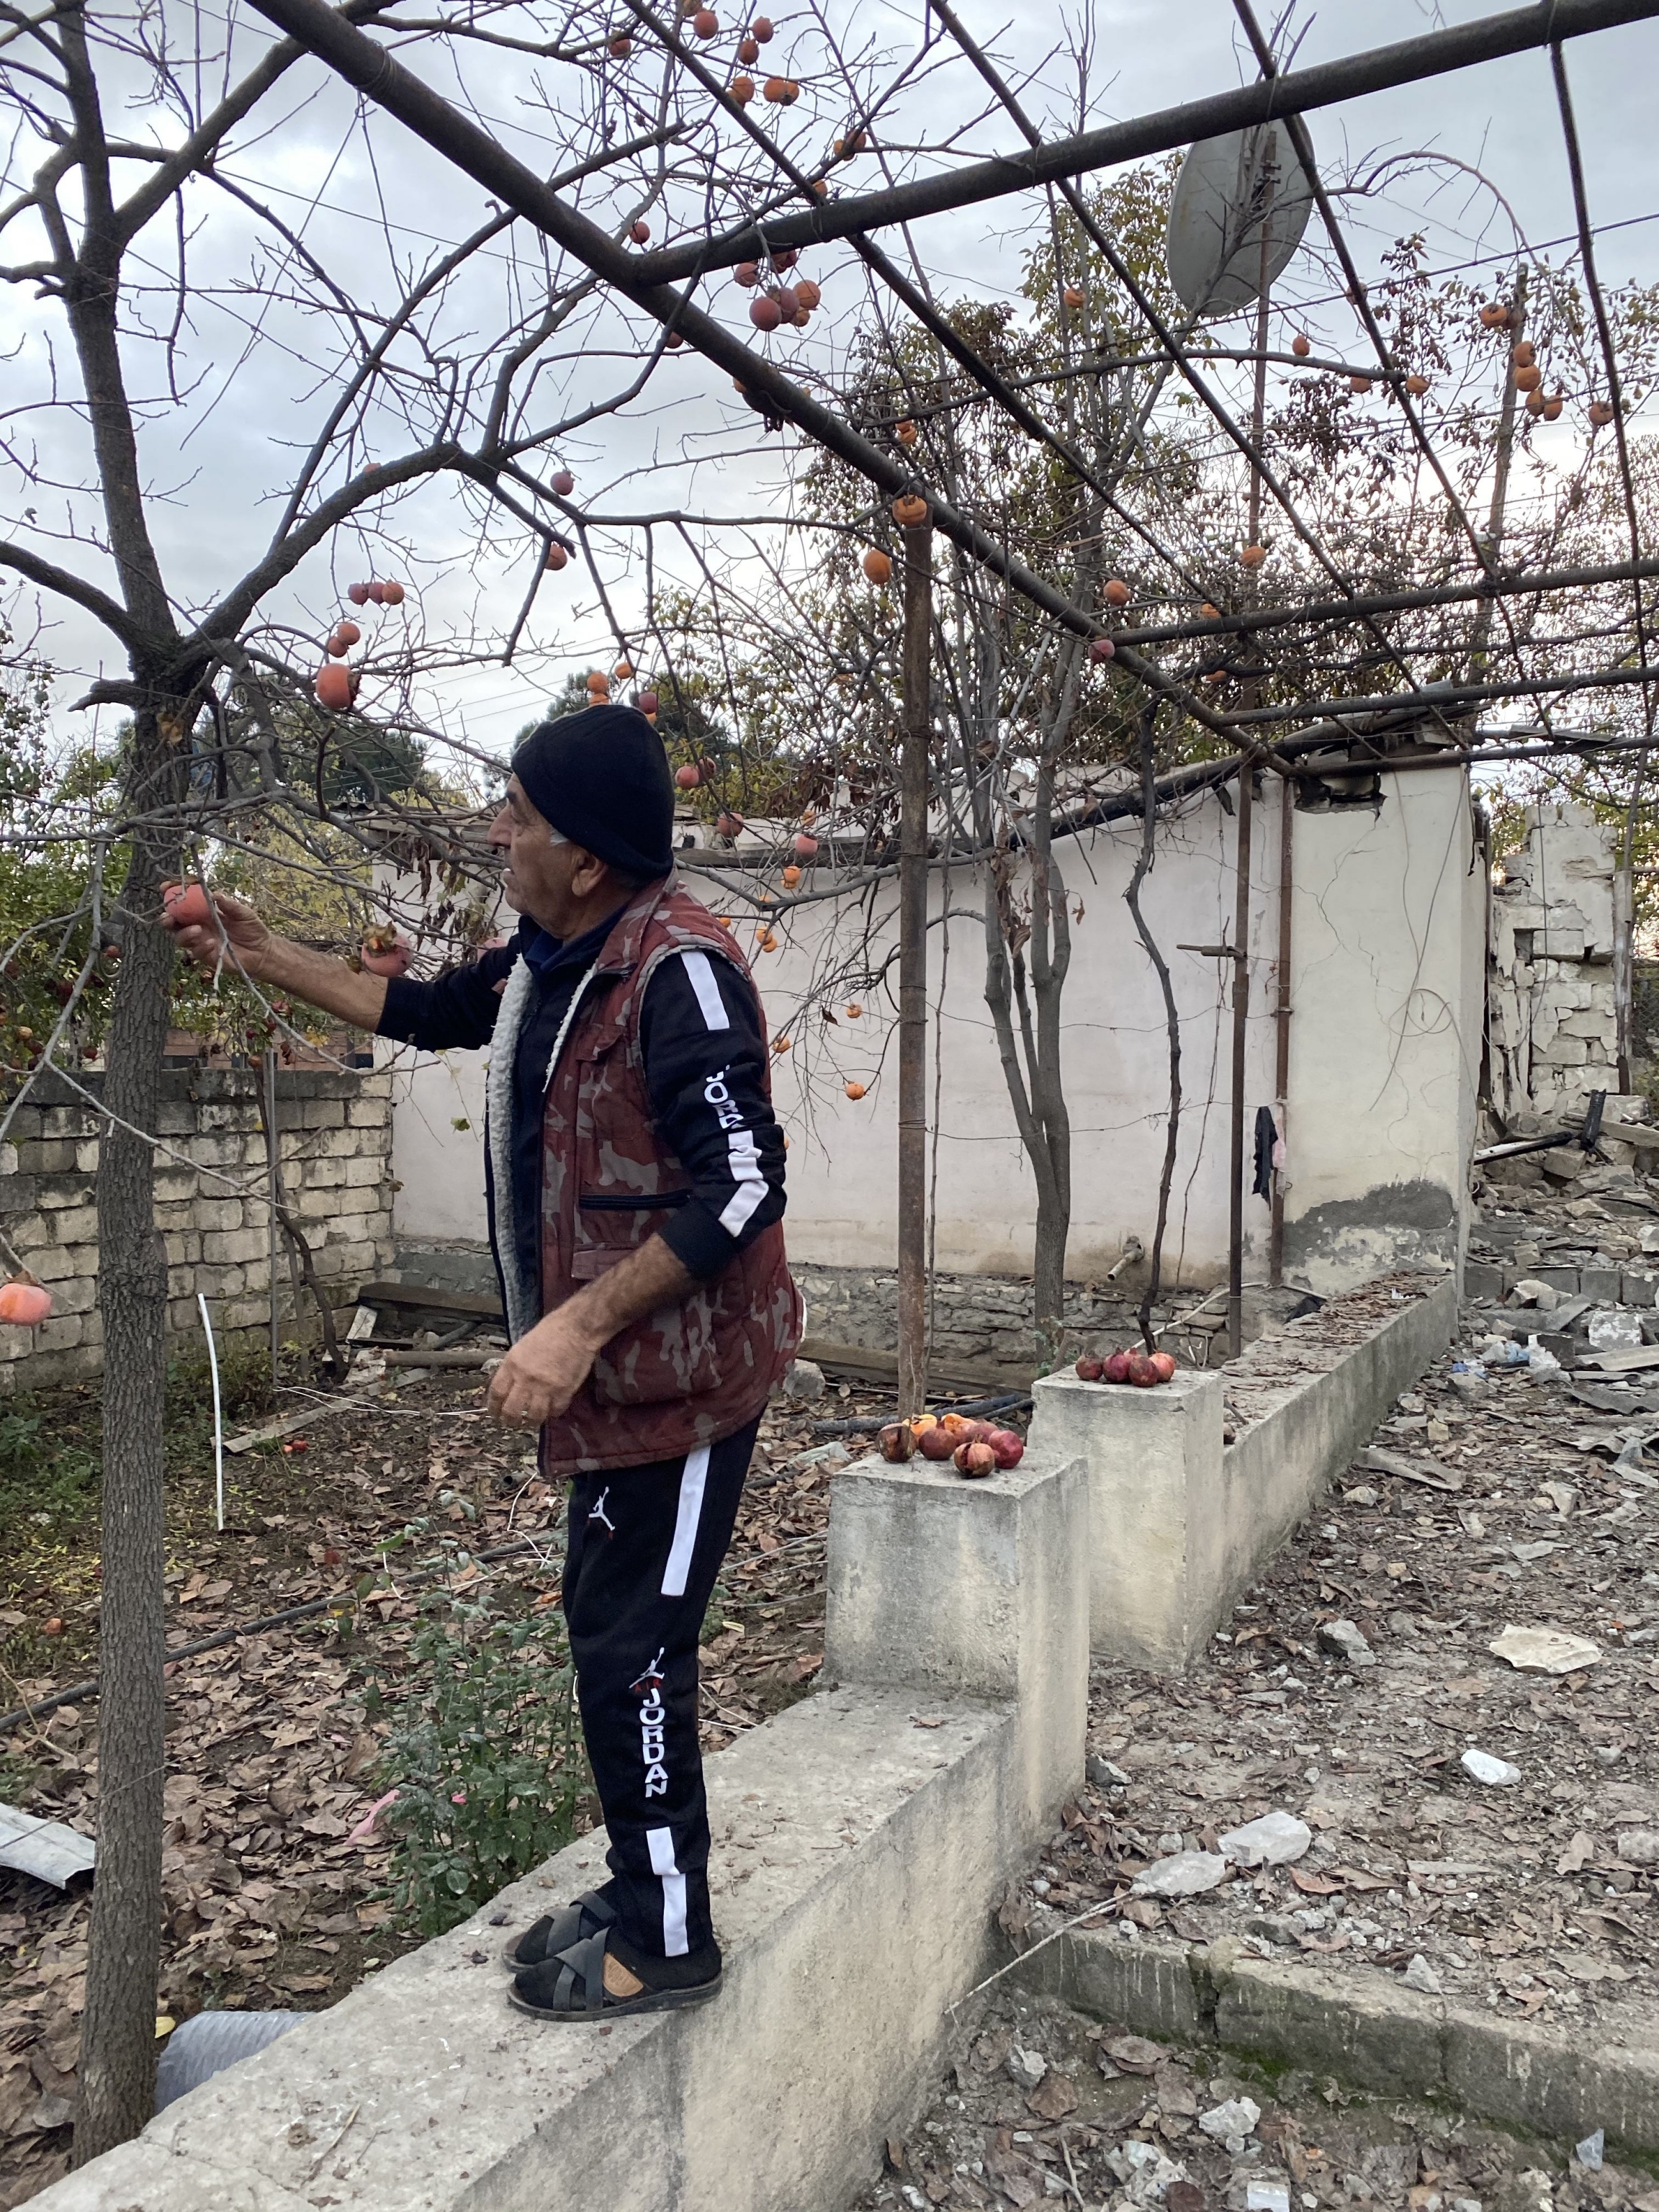 Levitan Danielyan, 68, picks some persimmons from his garden in the Armenian town Martuni around the wreckage from a nearby shelling.